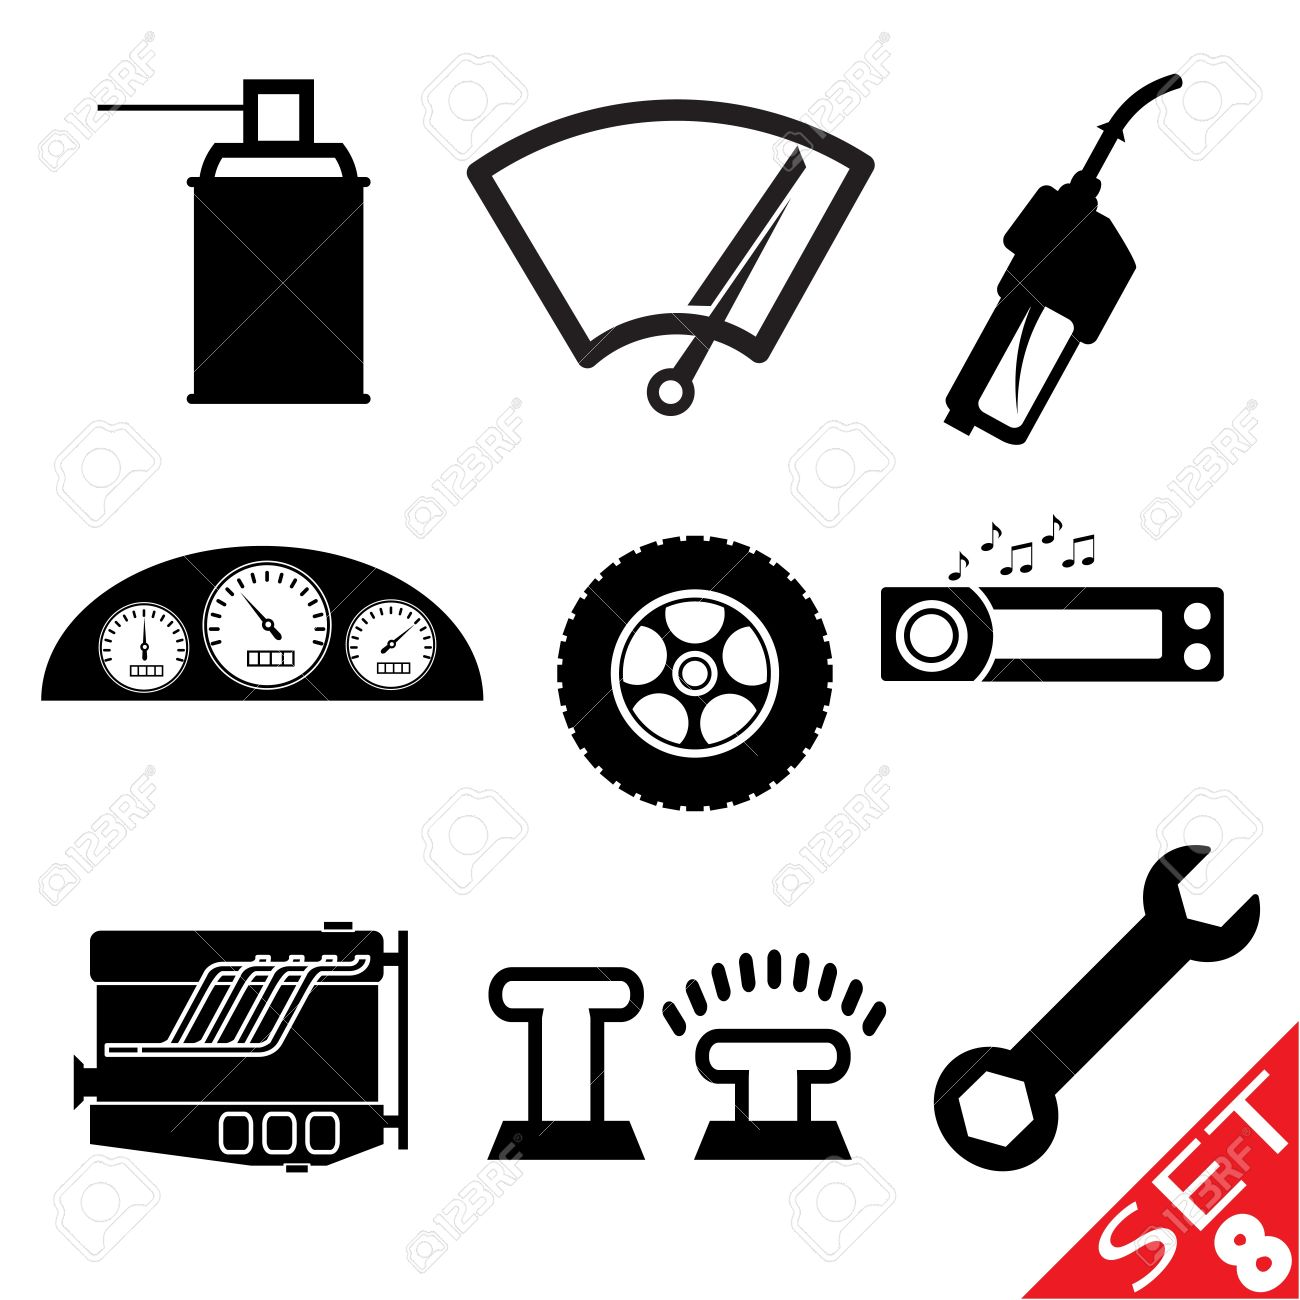 car-accessories-clipart-6.jpg